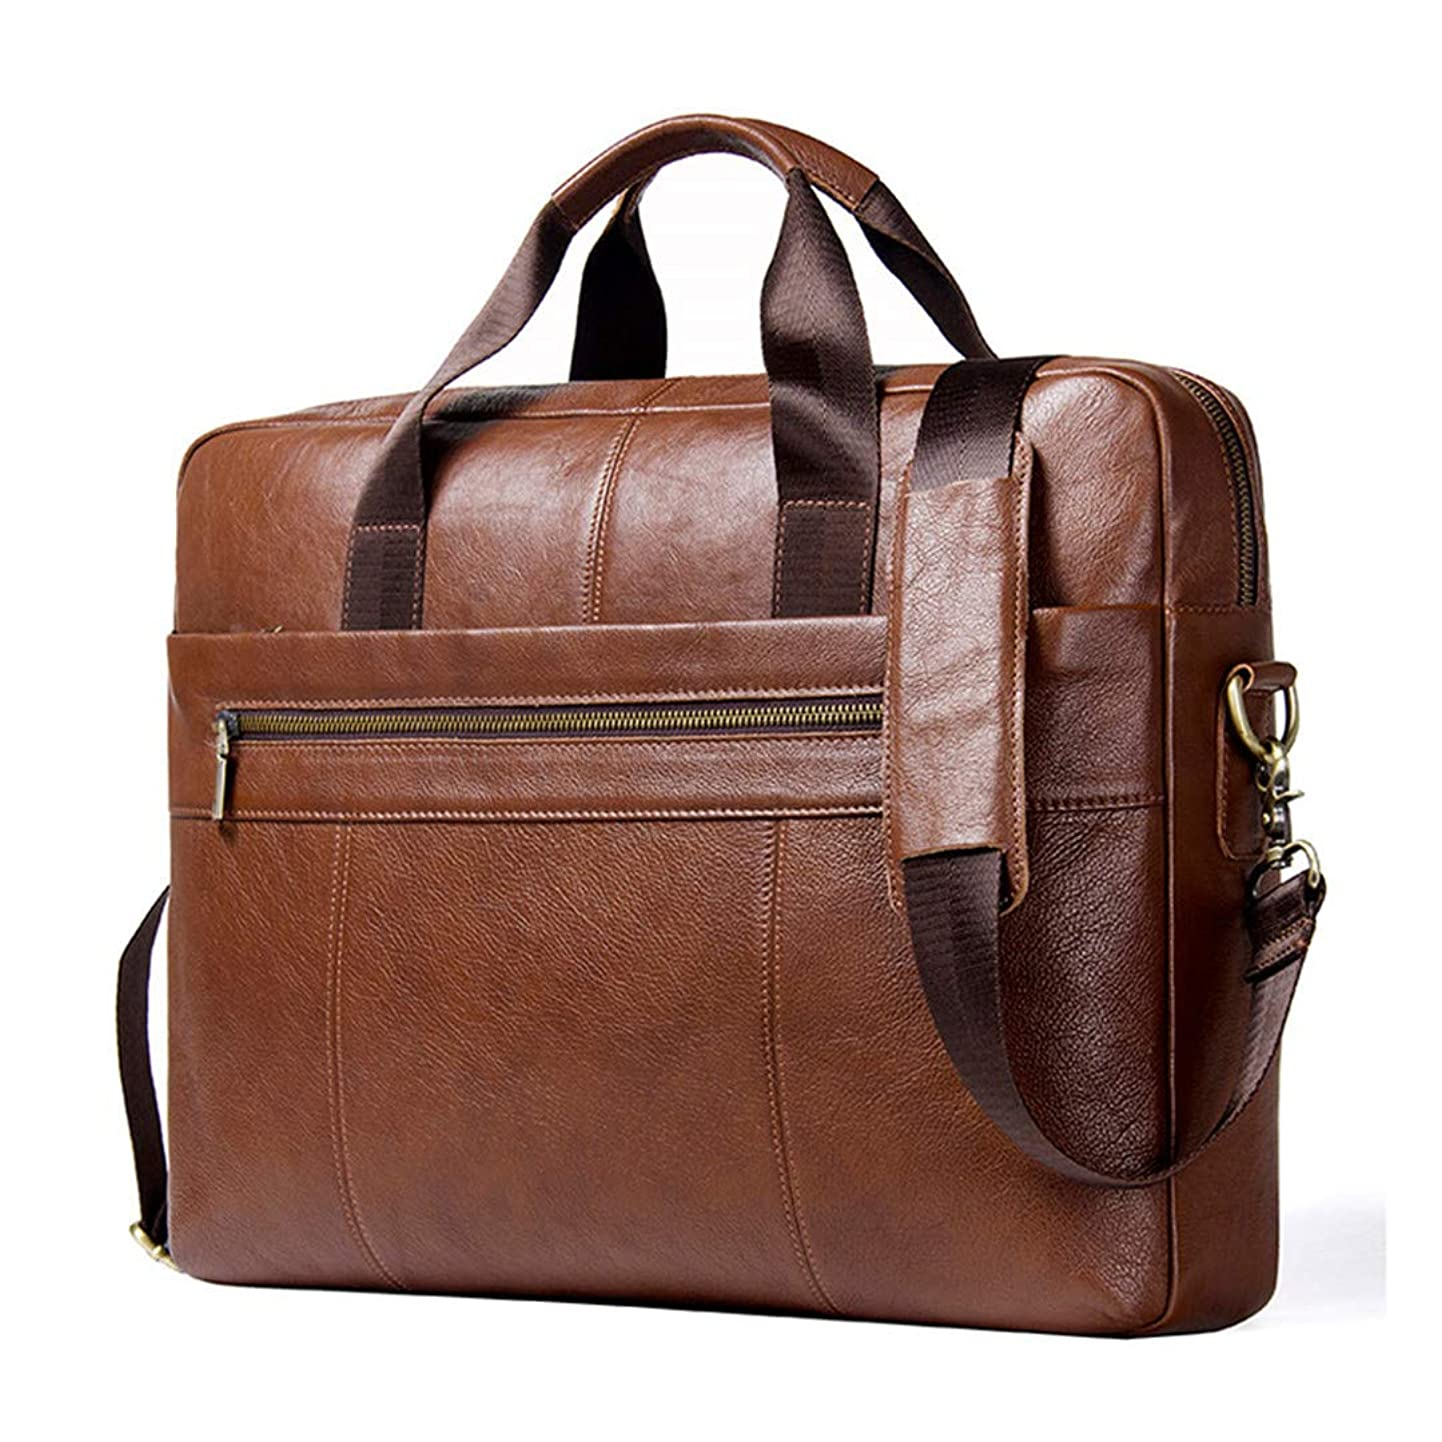 Leather Male Messenger Bag For 15.6